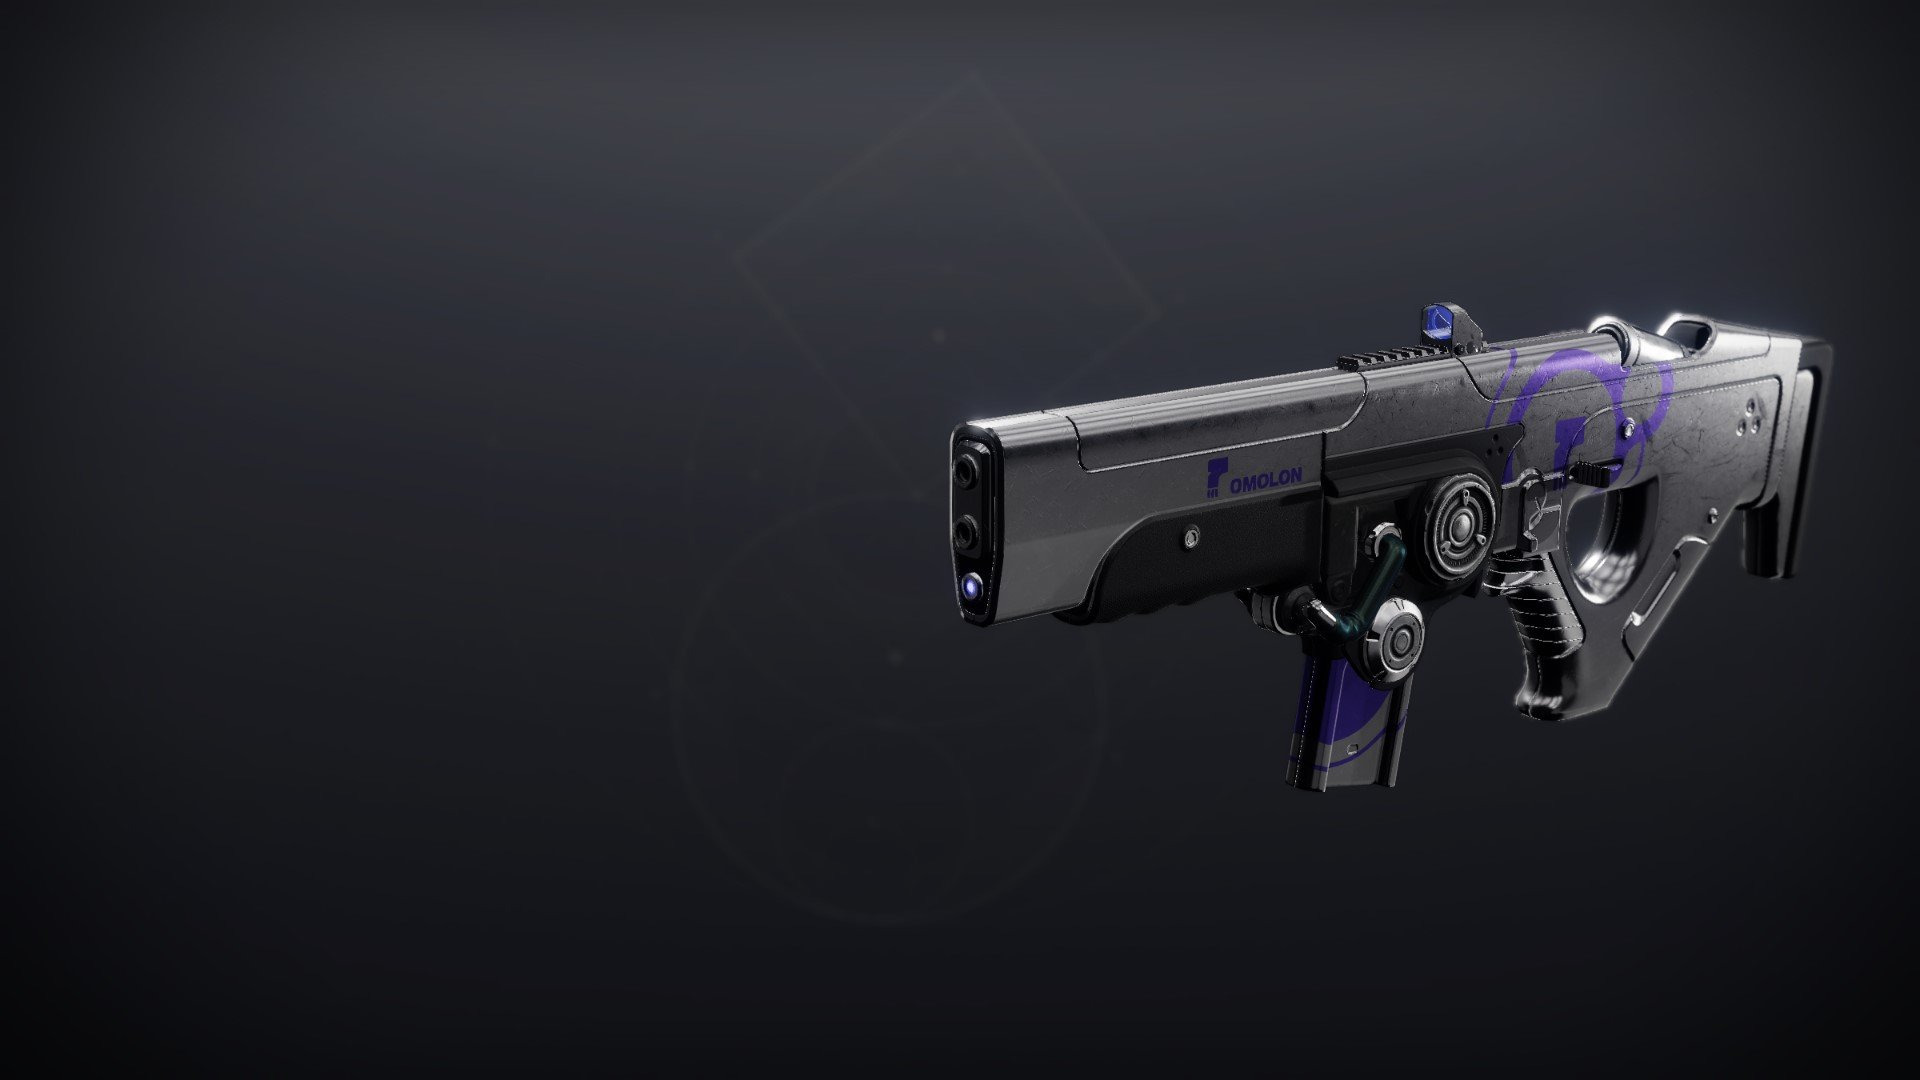 An in-game render of the Hung Jury SR4 (Adept).